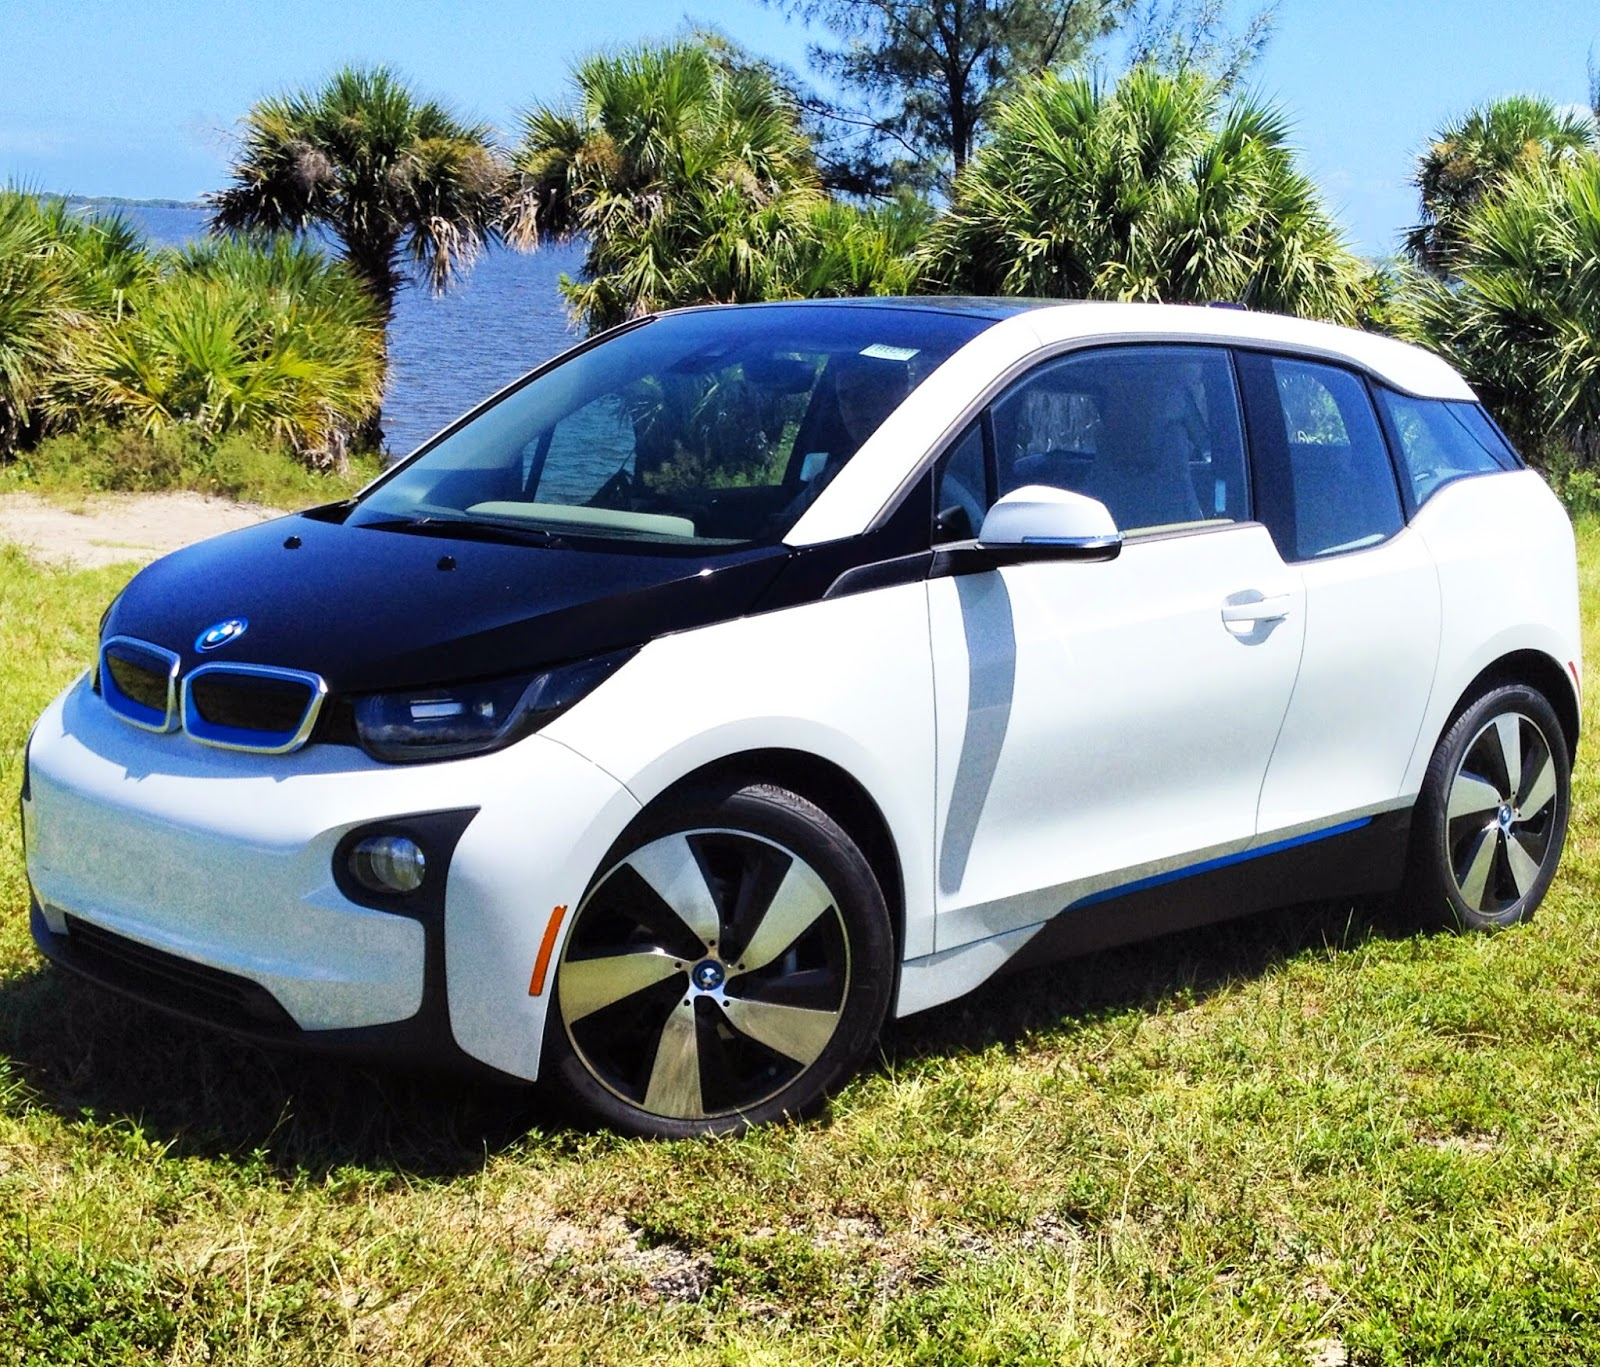 Bmwpany In Germany: Chase Gregory: Electric Car: BMW I3 Part Two W/Video